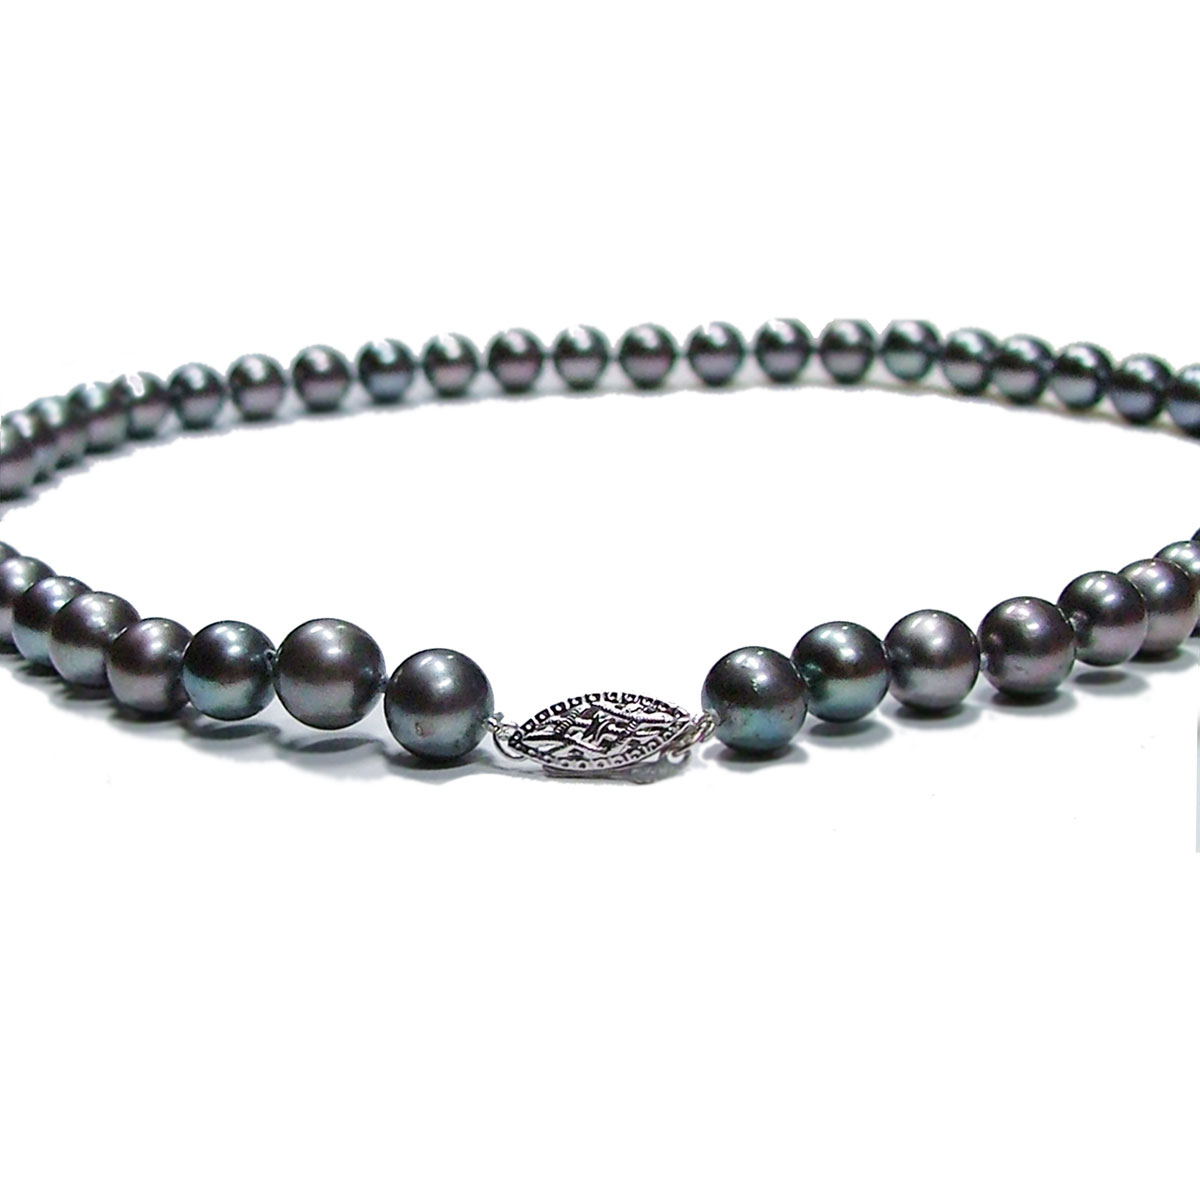 Black pearl necklace in New York and Toronto 2